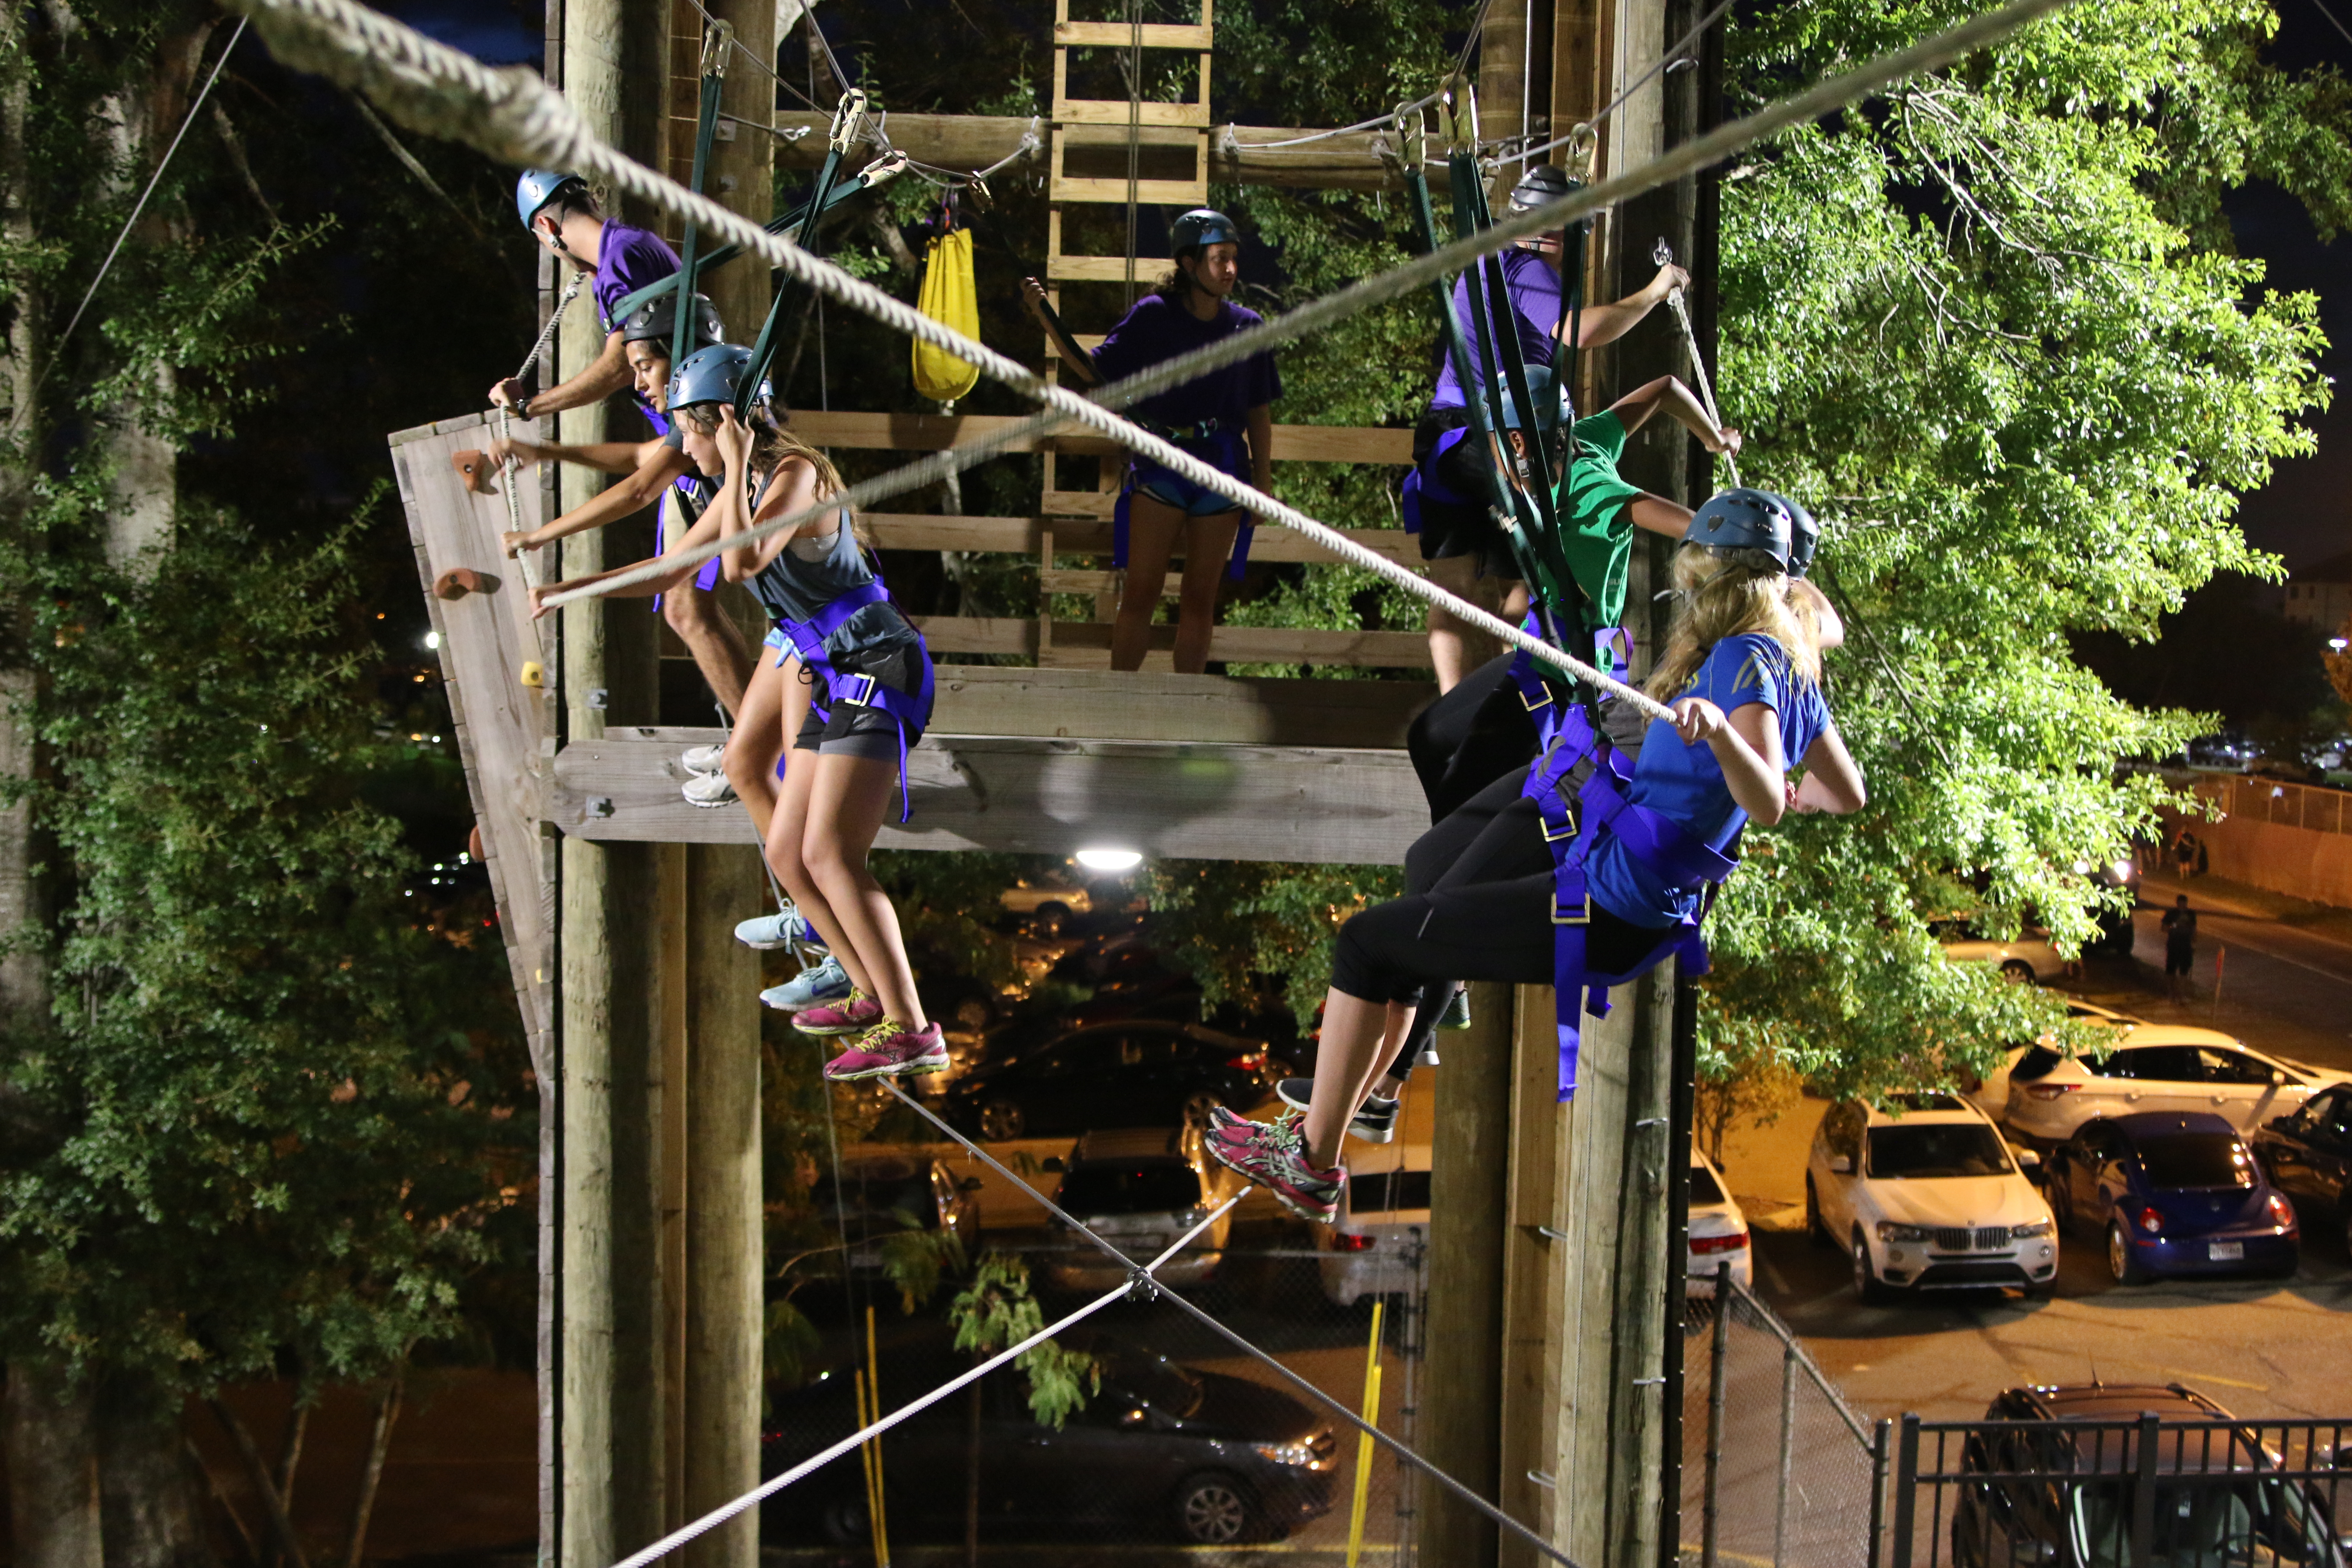 group on the challenge course at night